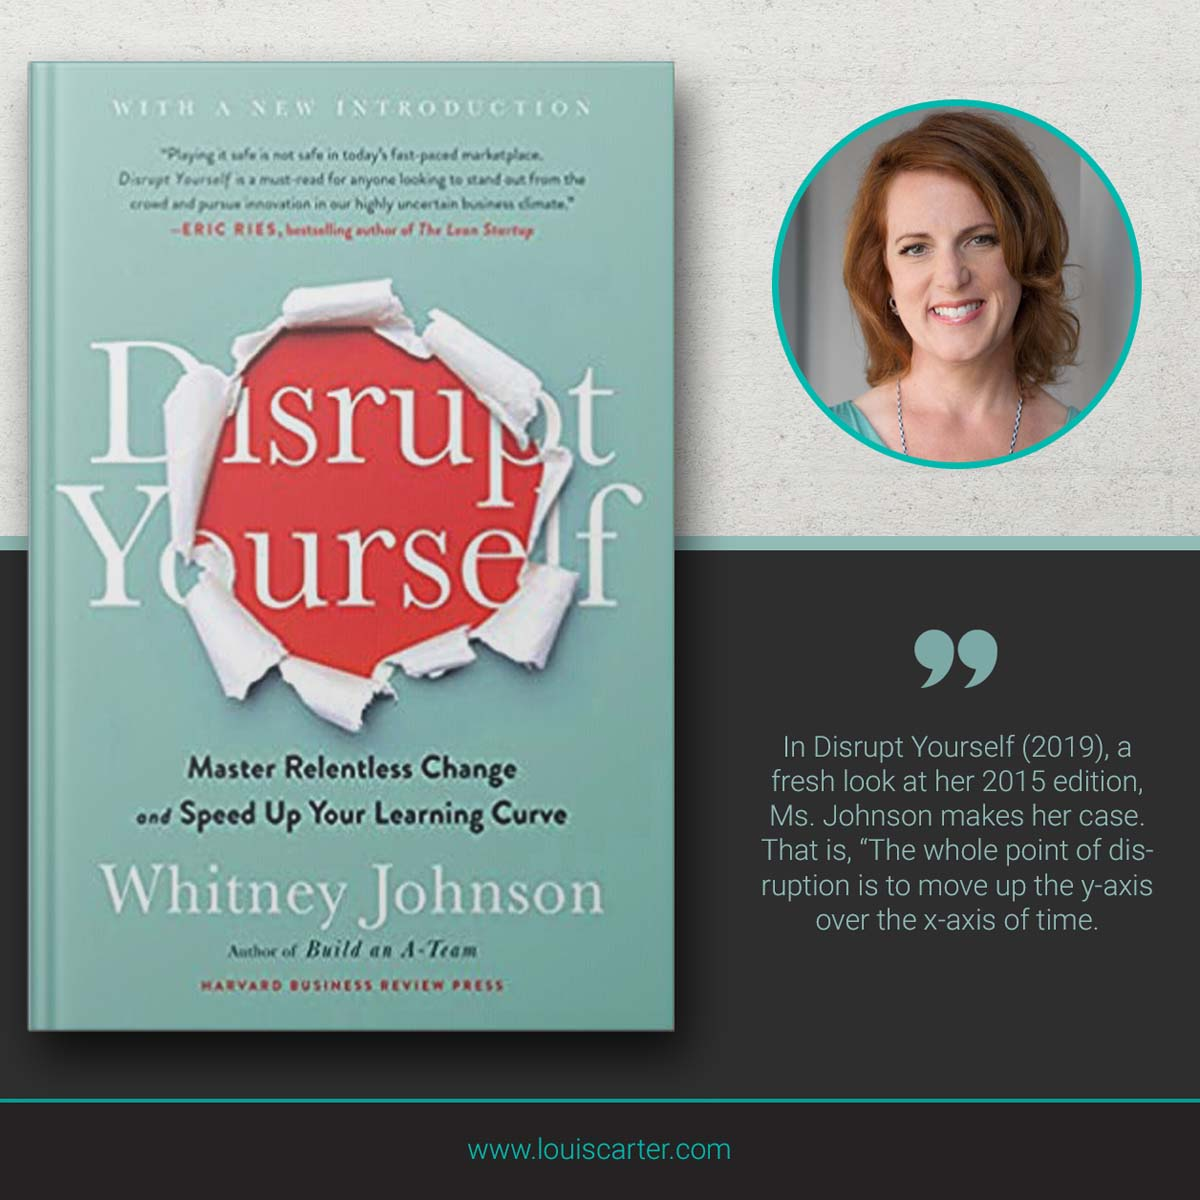 Image of leadership book Disrupt Yourself, With a New Introduction by Whitney Johnson.